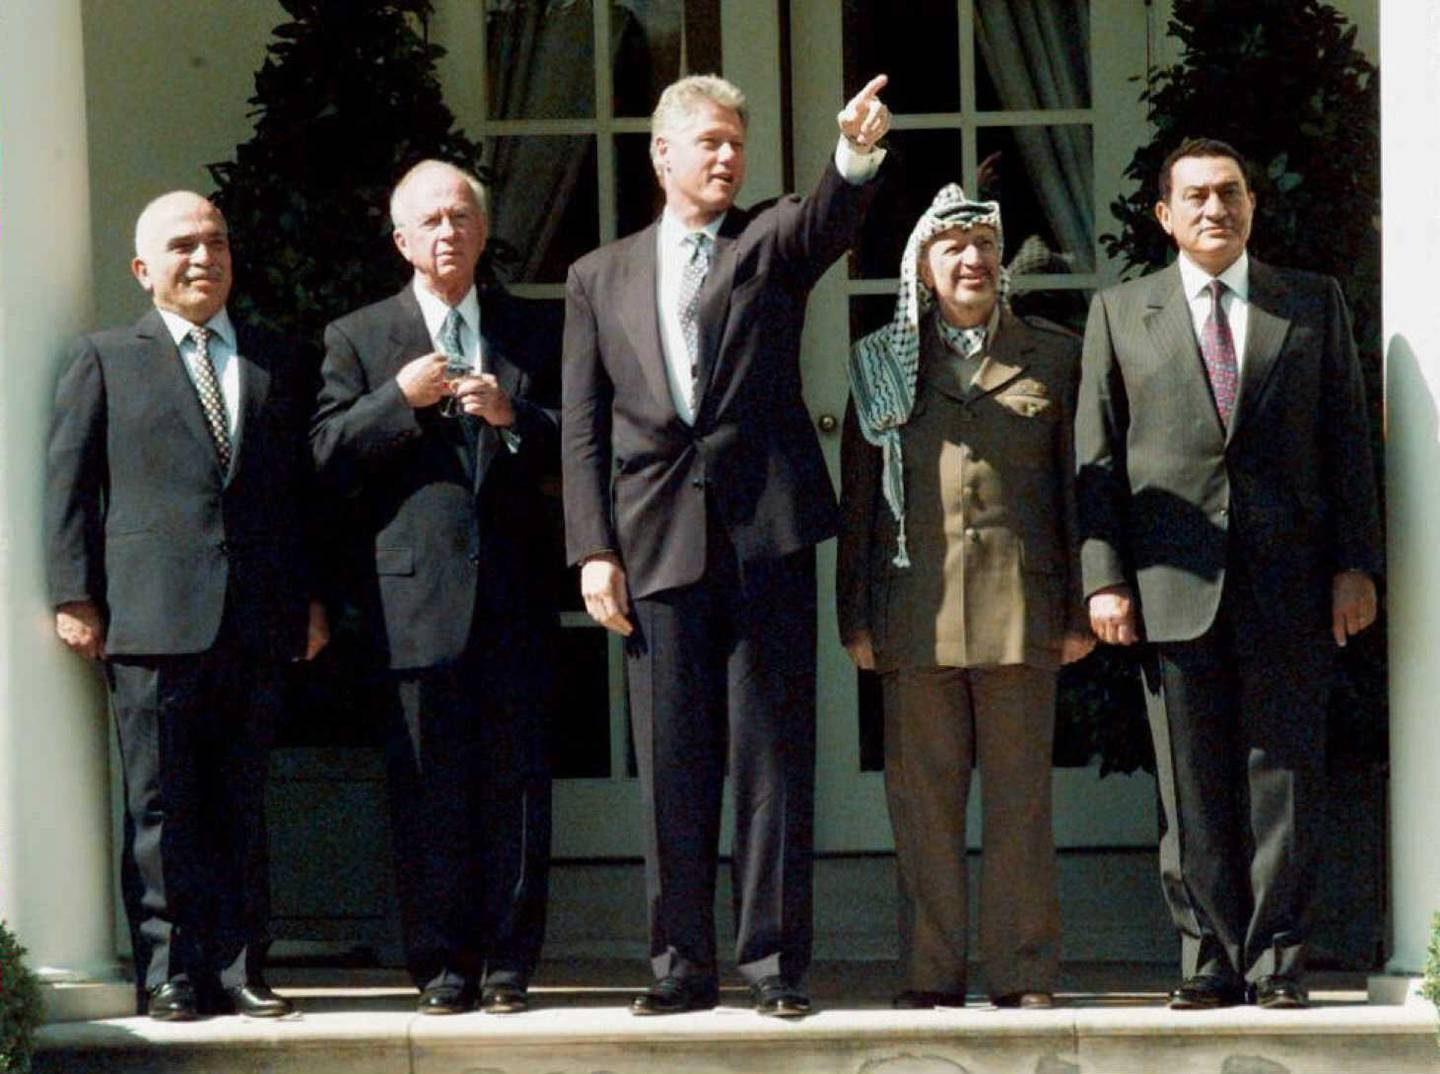 (FILES) A file photo taken on September 13, 1995 shows (L-R) Jordan's King Hussein, Israeli Prime Minister Yitzhak Rabin, US President Bill Clinton, PLO Chairman Yasser Arafat and Egyptian President Hosni Mubarak tour the White House Rose Garden on September 13, 1995 before ceremonies for the signing of an Israeli-PLO agreement on Palestinian autonomy in the West Bank.  Egypt's former long-time president Hosni Mubarak died on February 25, 2020, at the age 91 at Cairo's Galaa military hospital, his brother-in-law General Mounir Thabet told AFP. / AFP / - / J. DAVID AKE